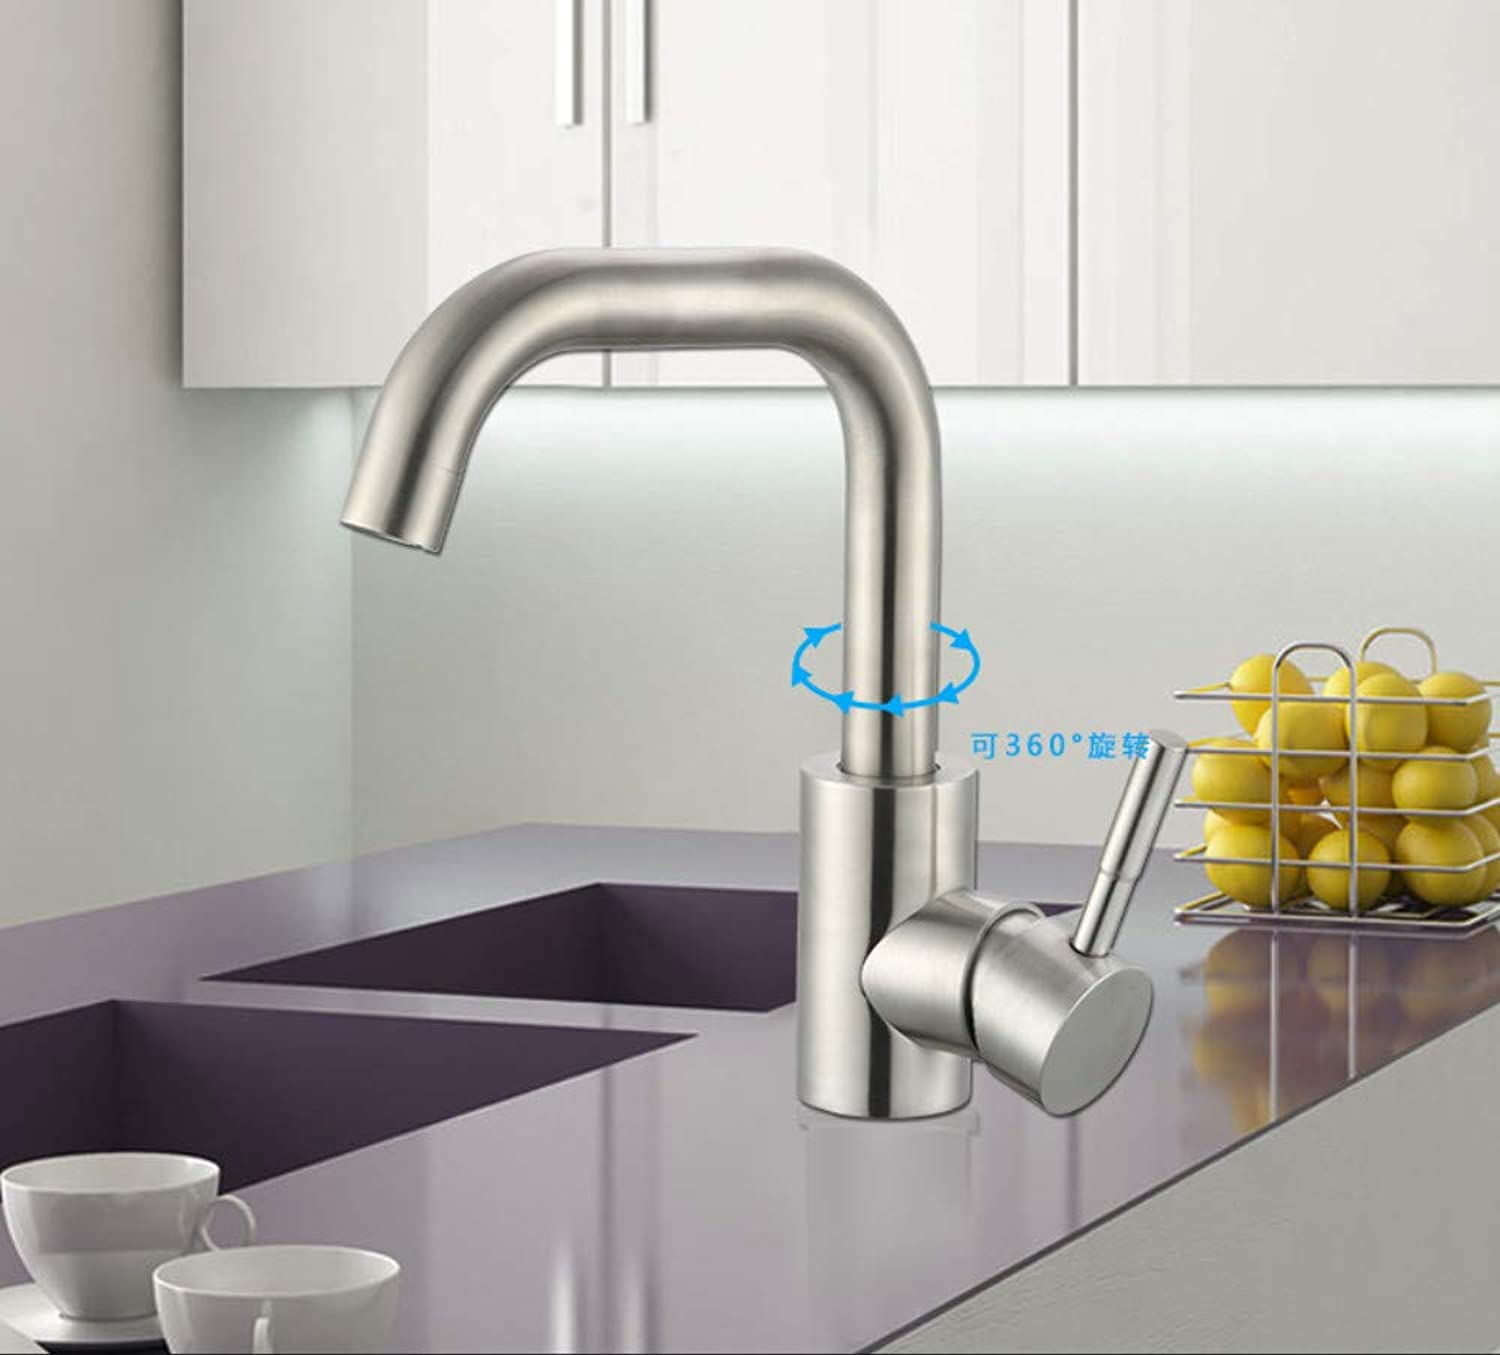 Kitchen Sink Taps bathroom Sink Taps sus304 Stainless Steel Hot And Cold Basin Faucet Washbasin Faucet Wash Basin Basin Single Hole redary Faucet